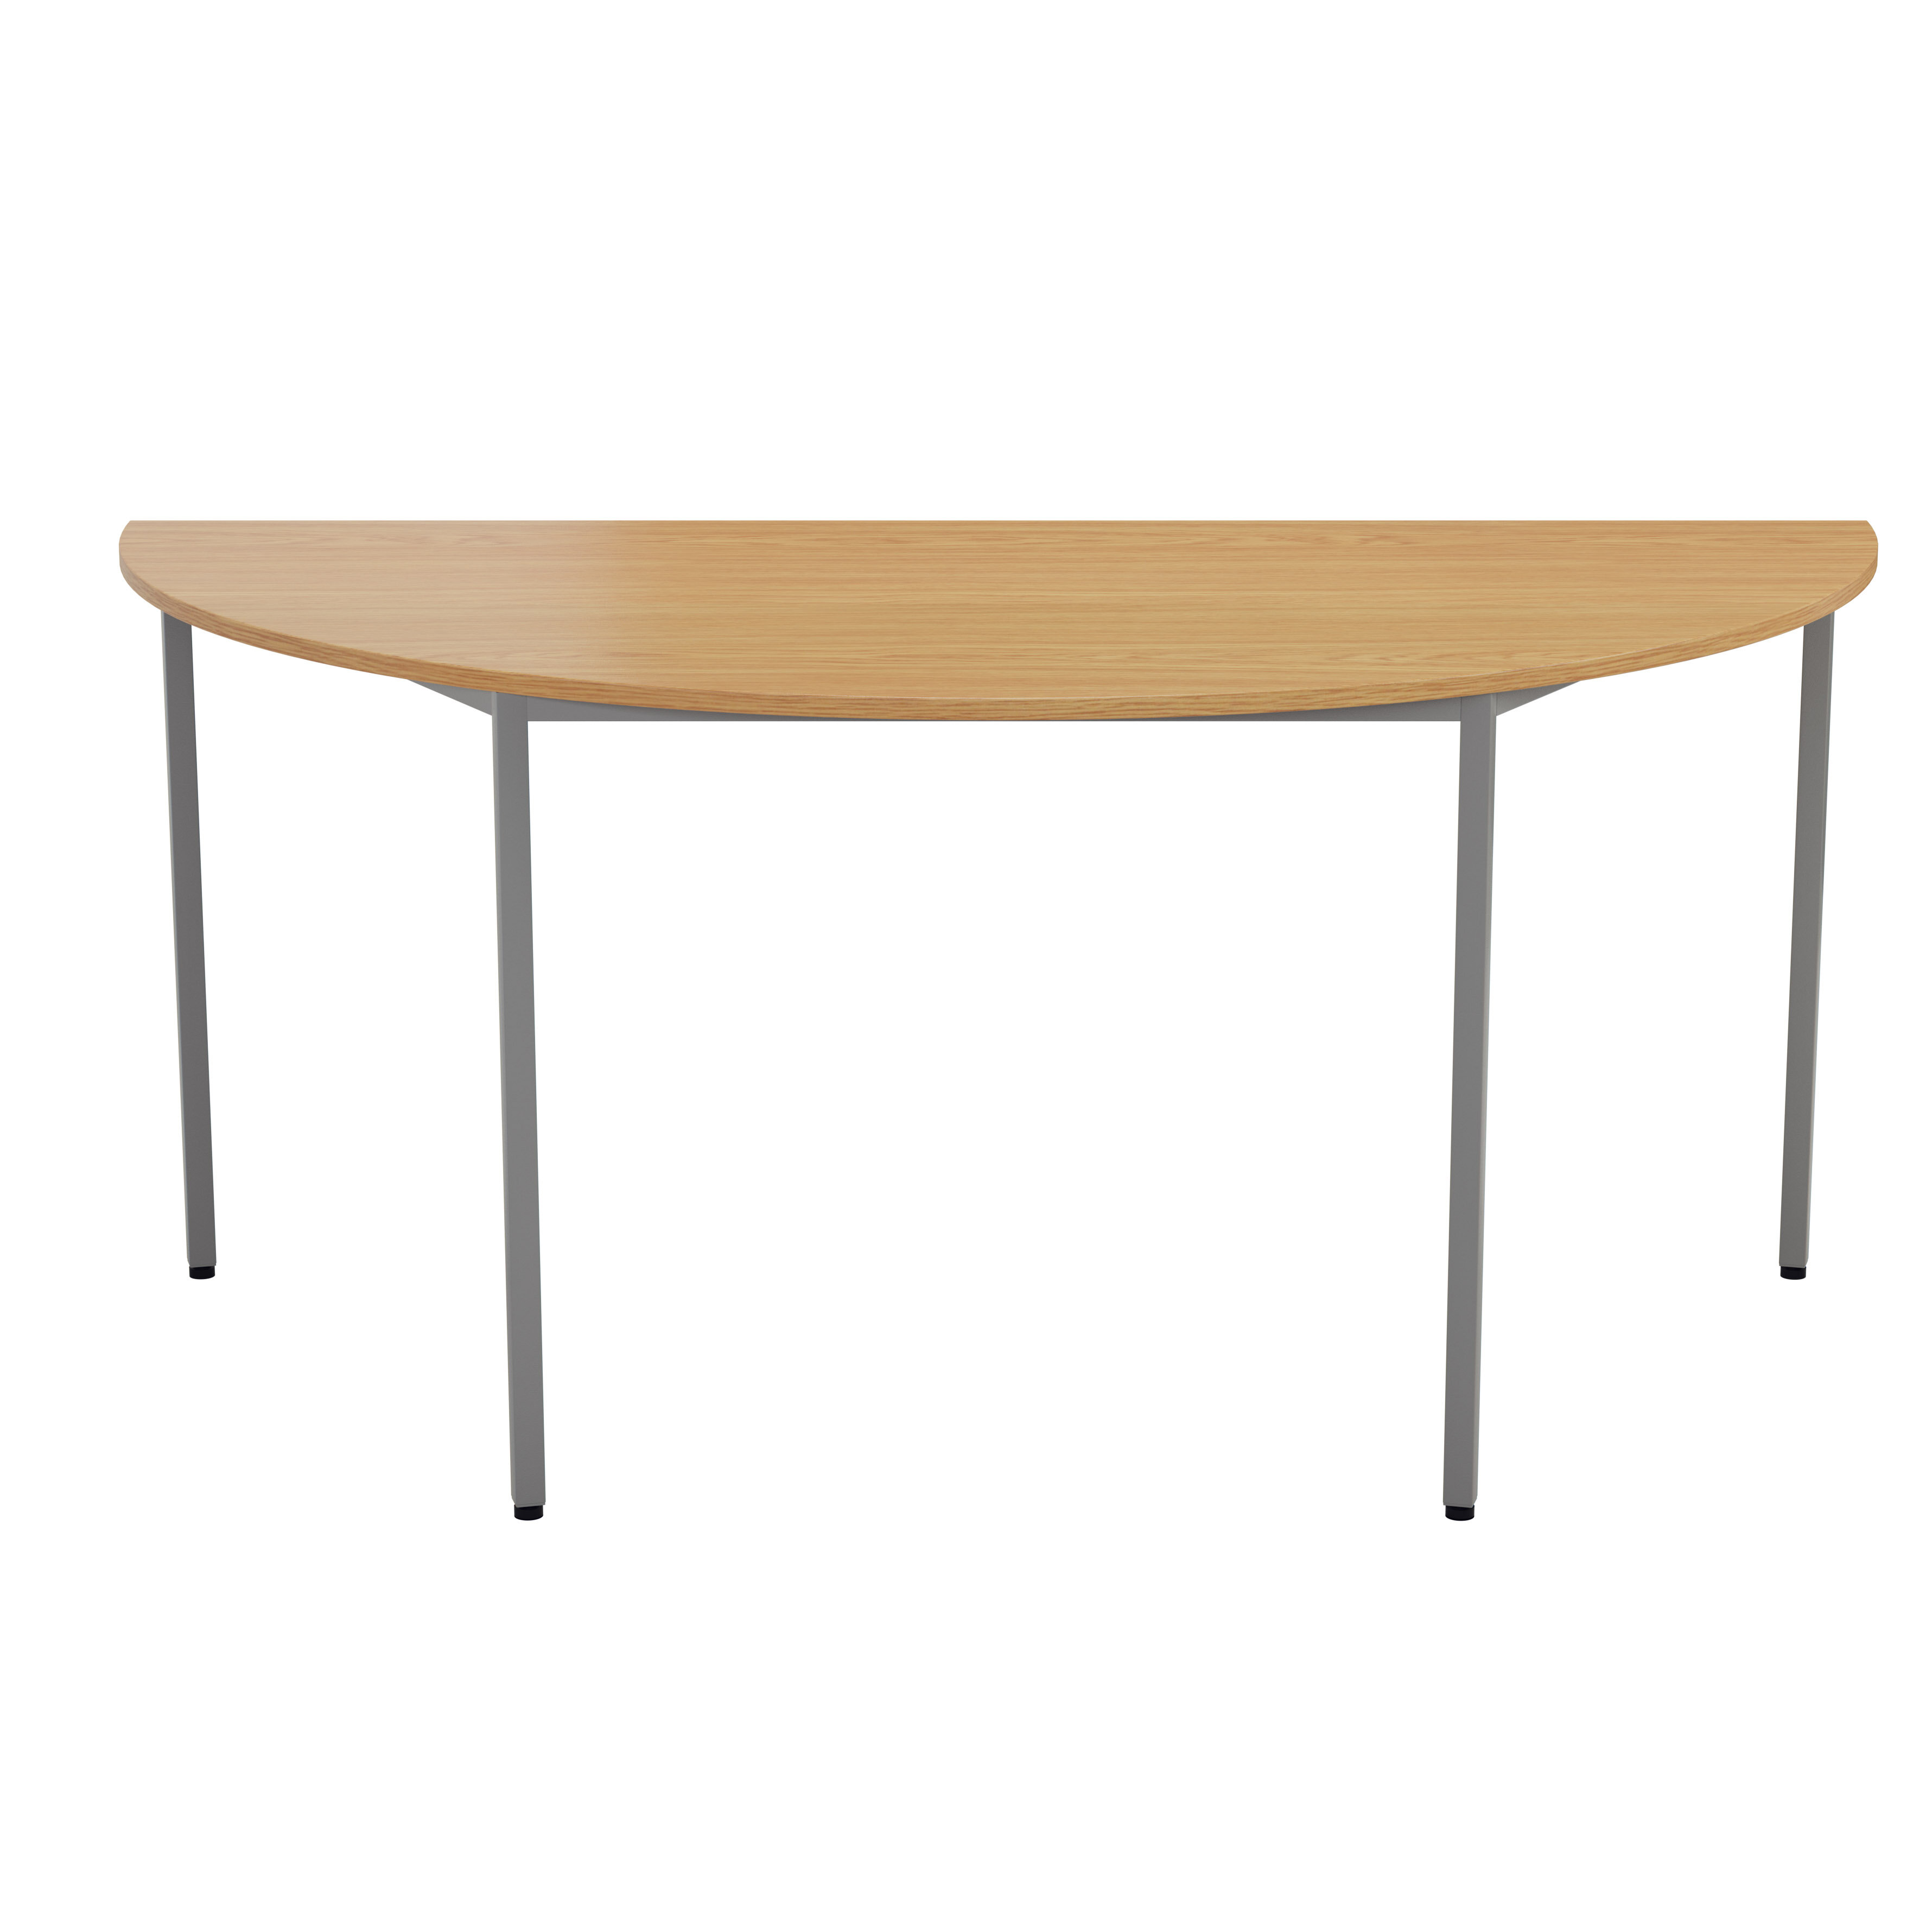 Picture of: 17 Stories Shropshire 1 6m Half Round Conference Table Wayfair Co Uk